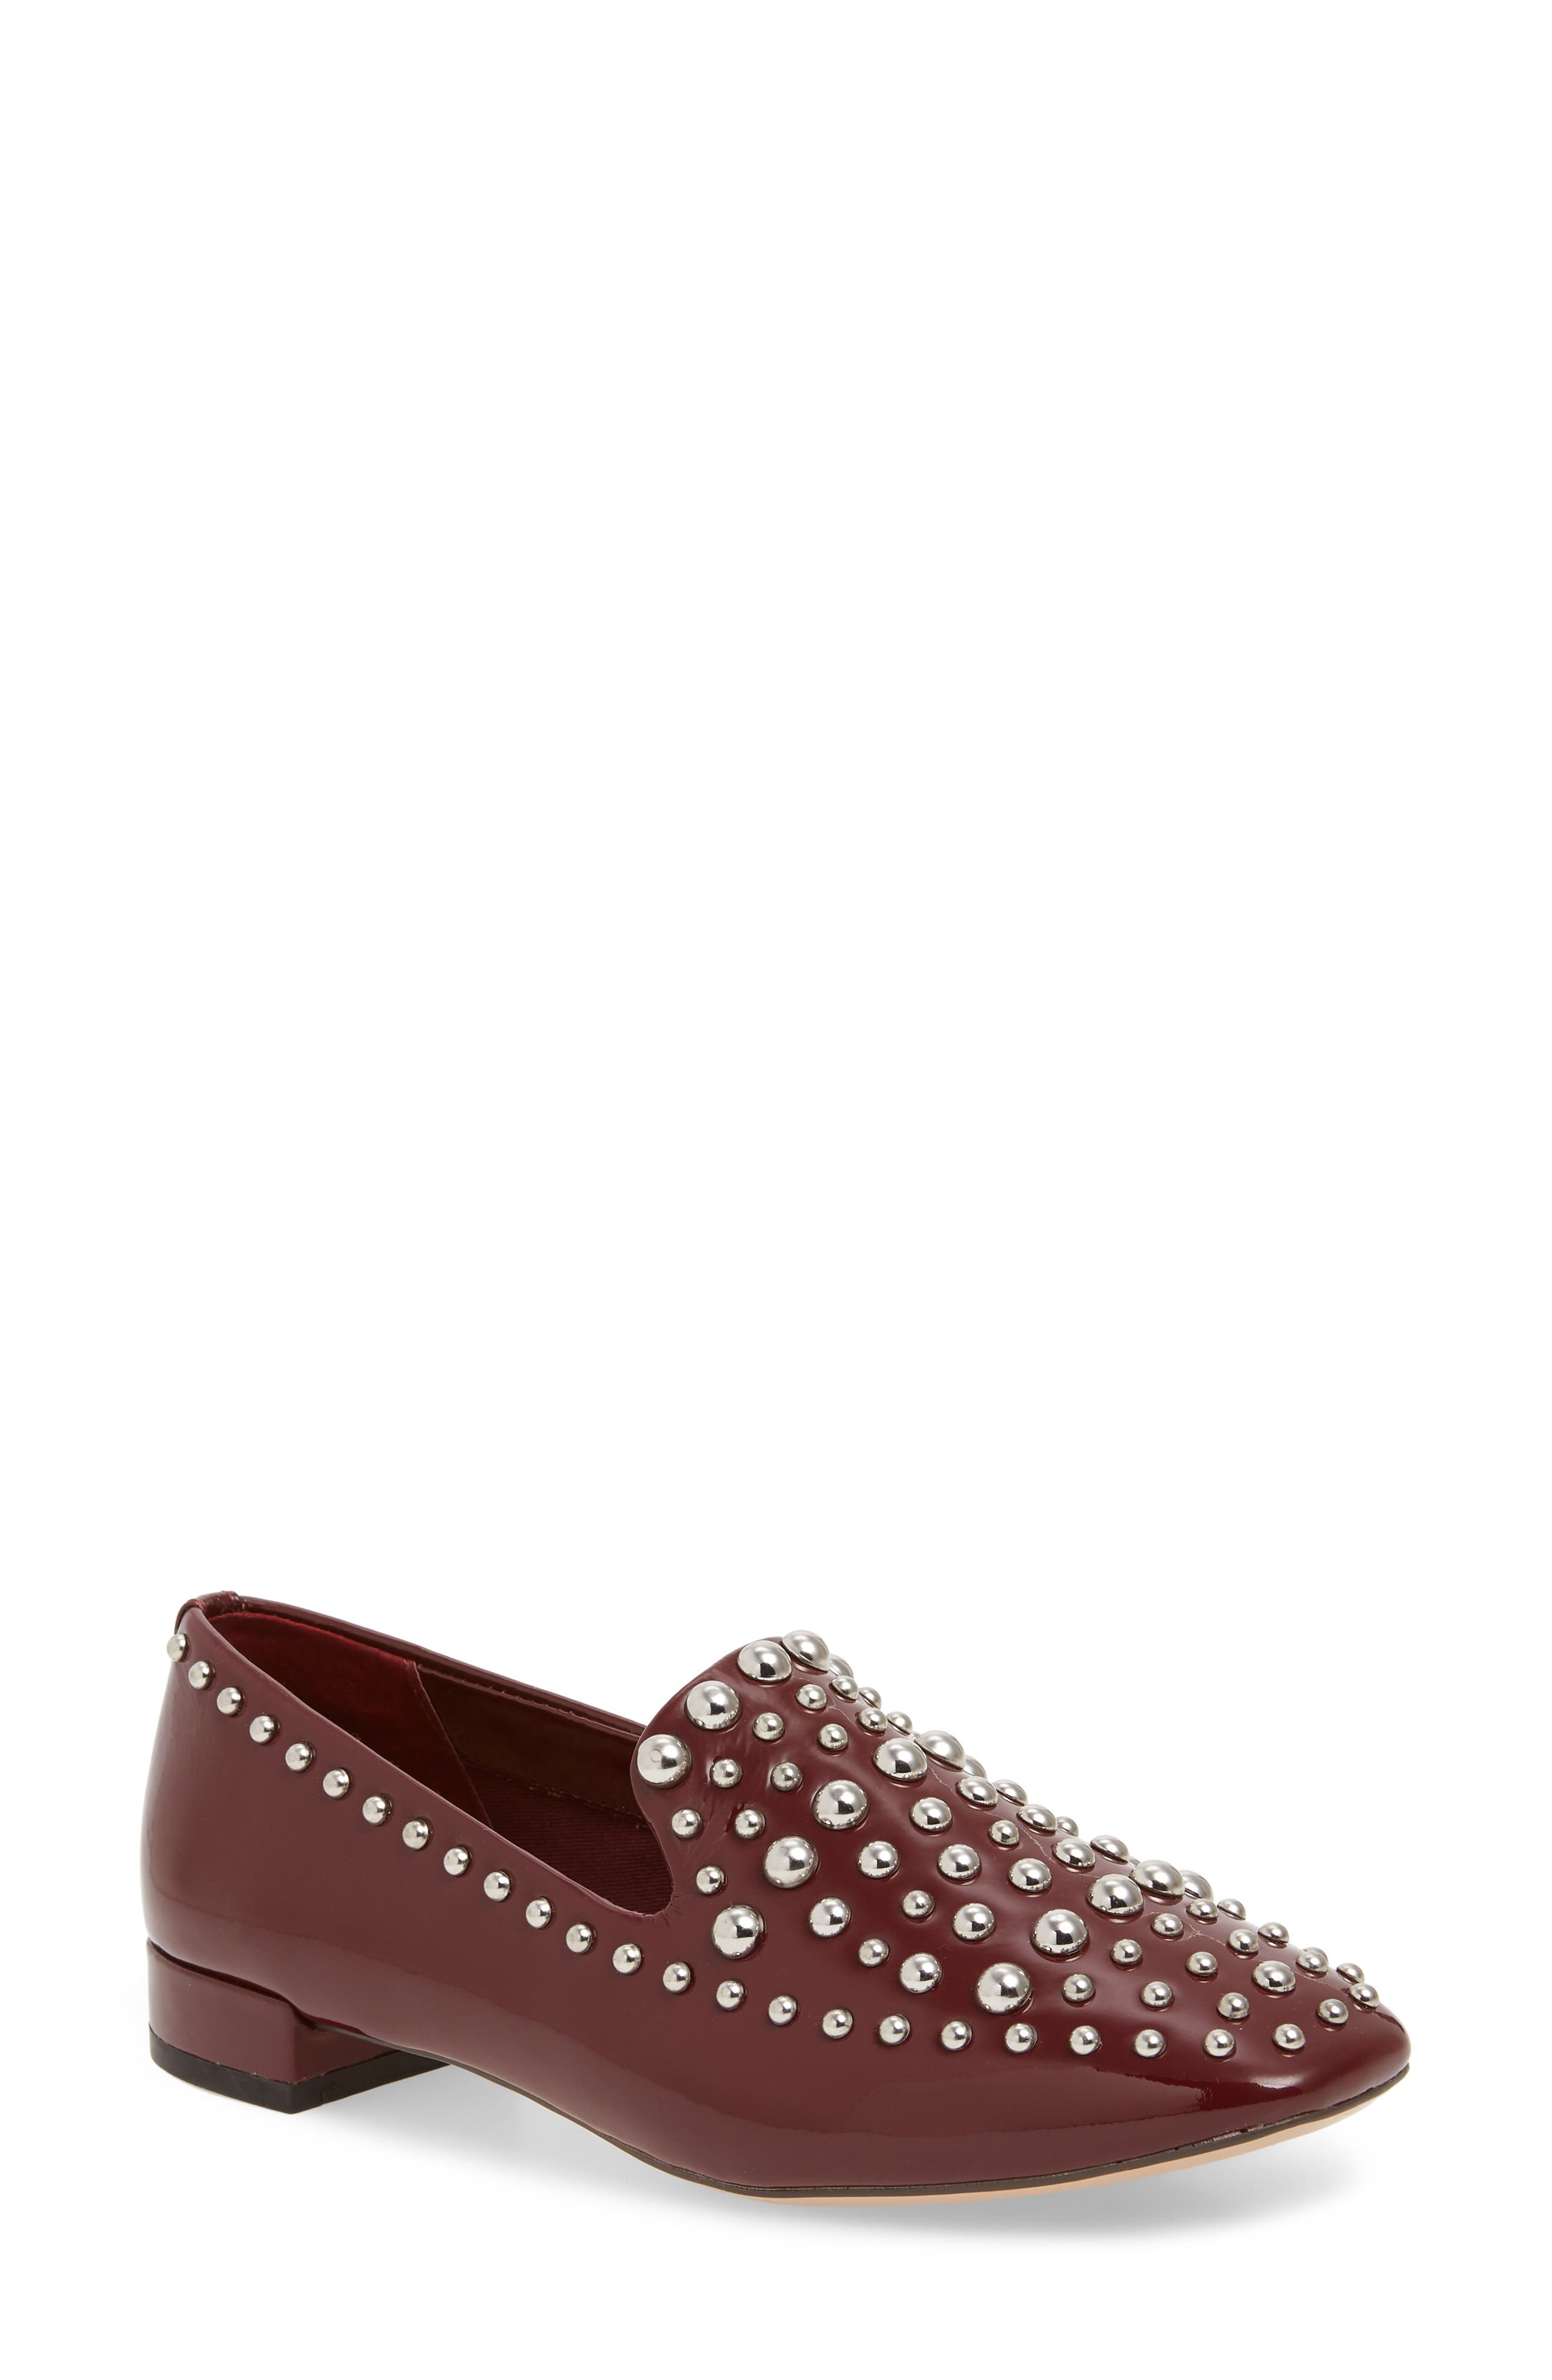 Kaylee Loafer,                         Main,                         color, BERRY PATENT LEATHER